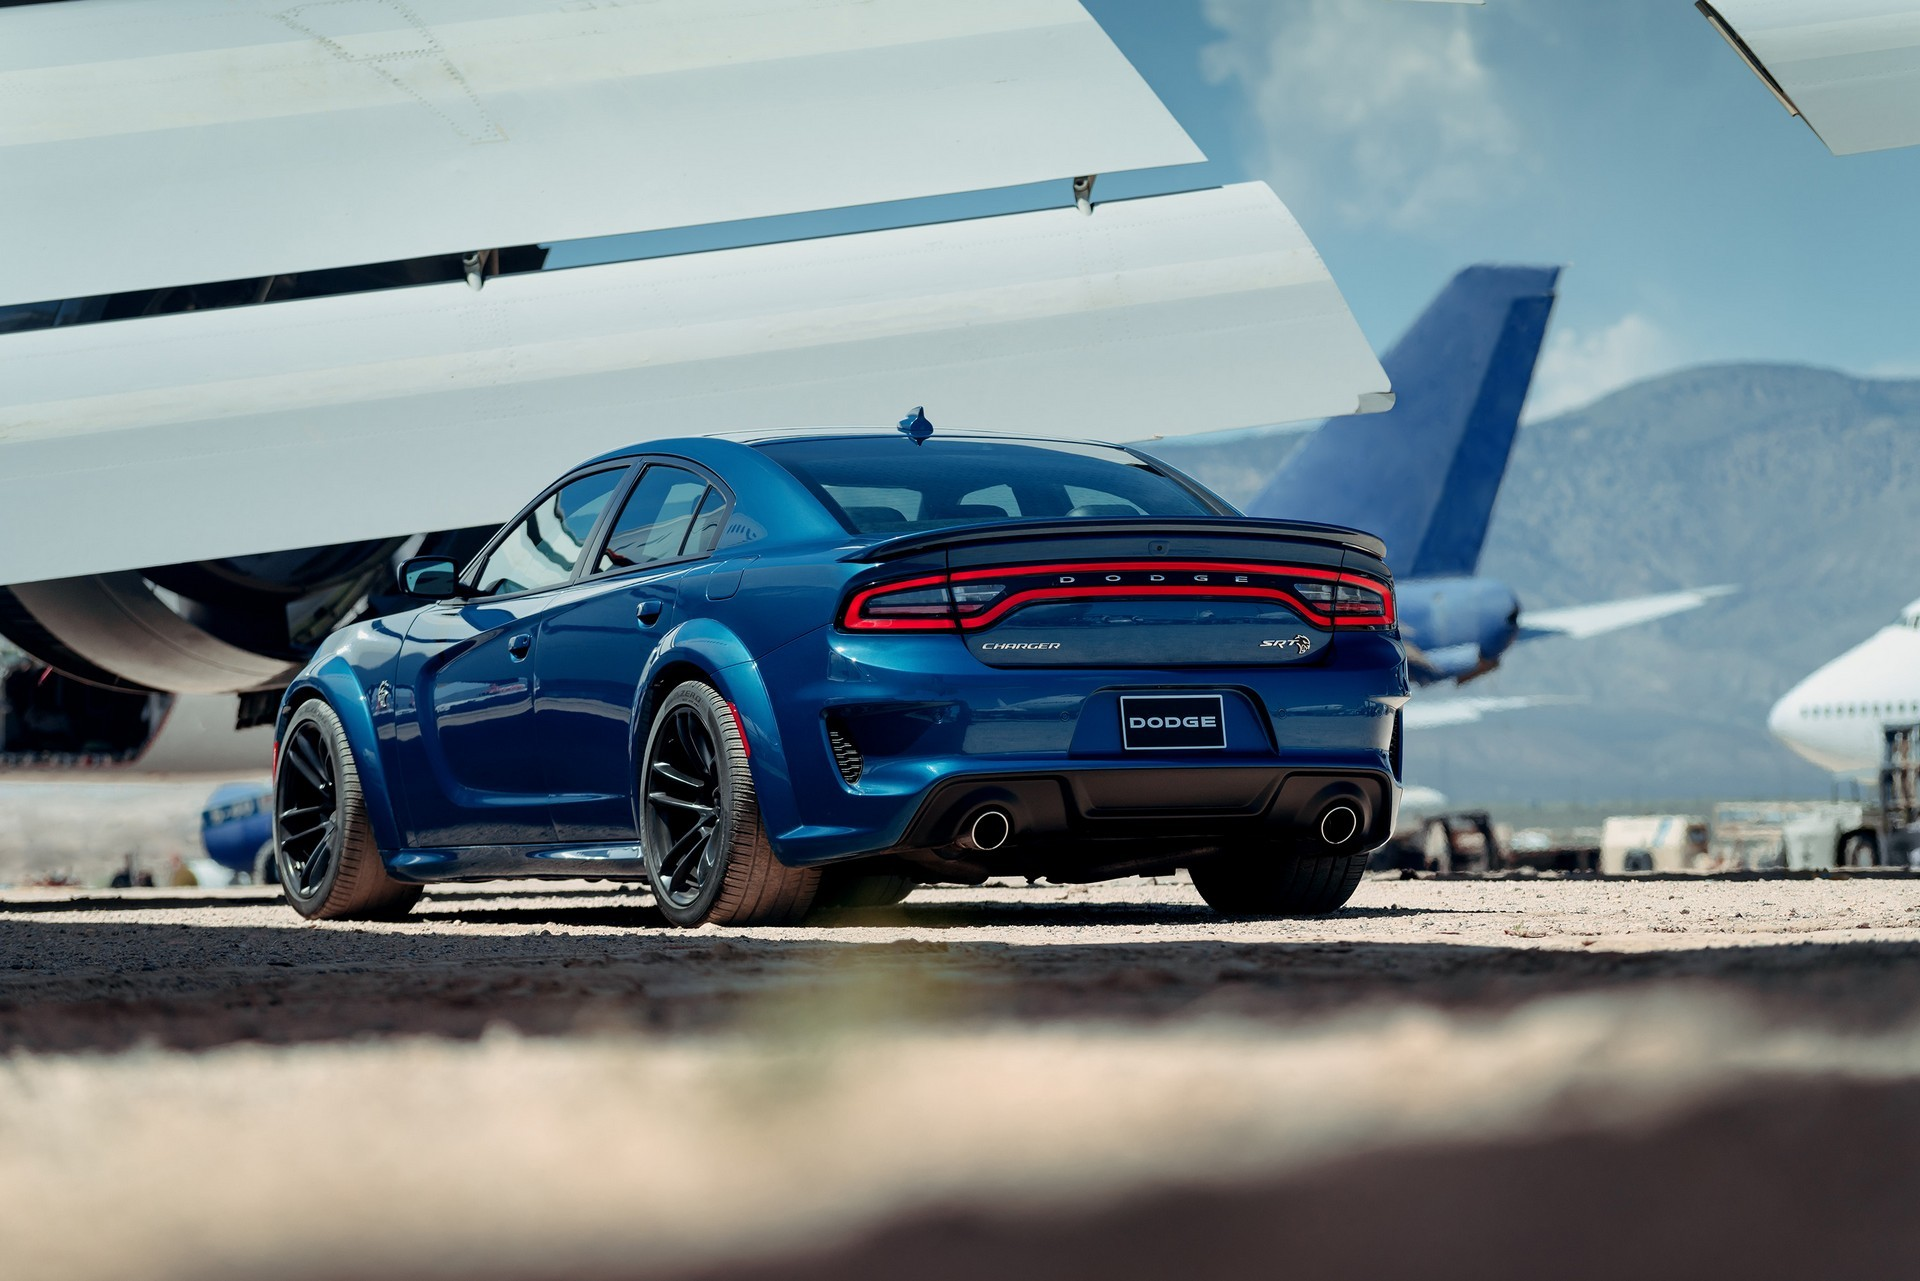 Non Widebody Dodge Charger Srt Hellcat Discontinued For 2020 Model Year Autoevolution